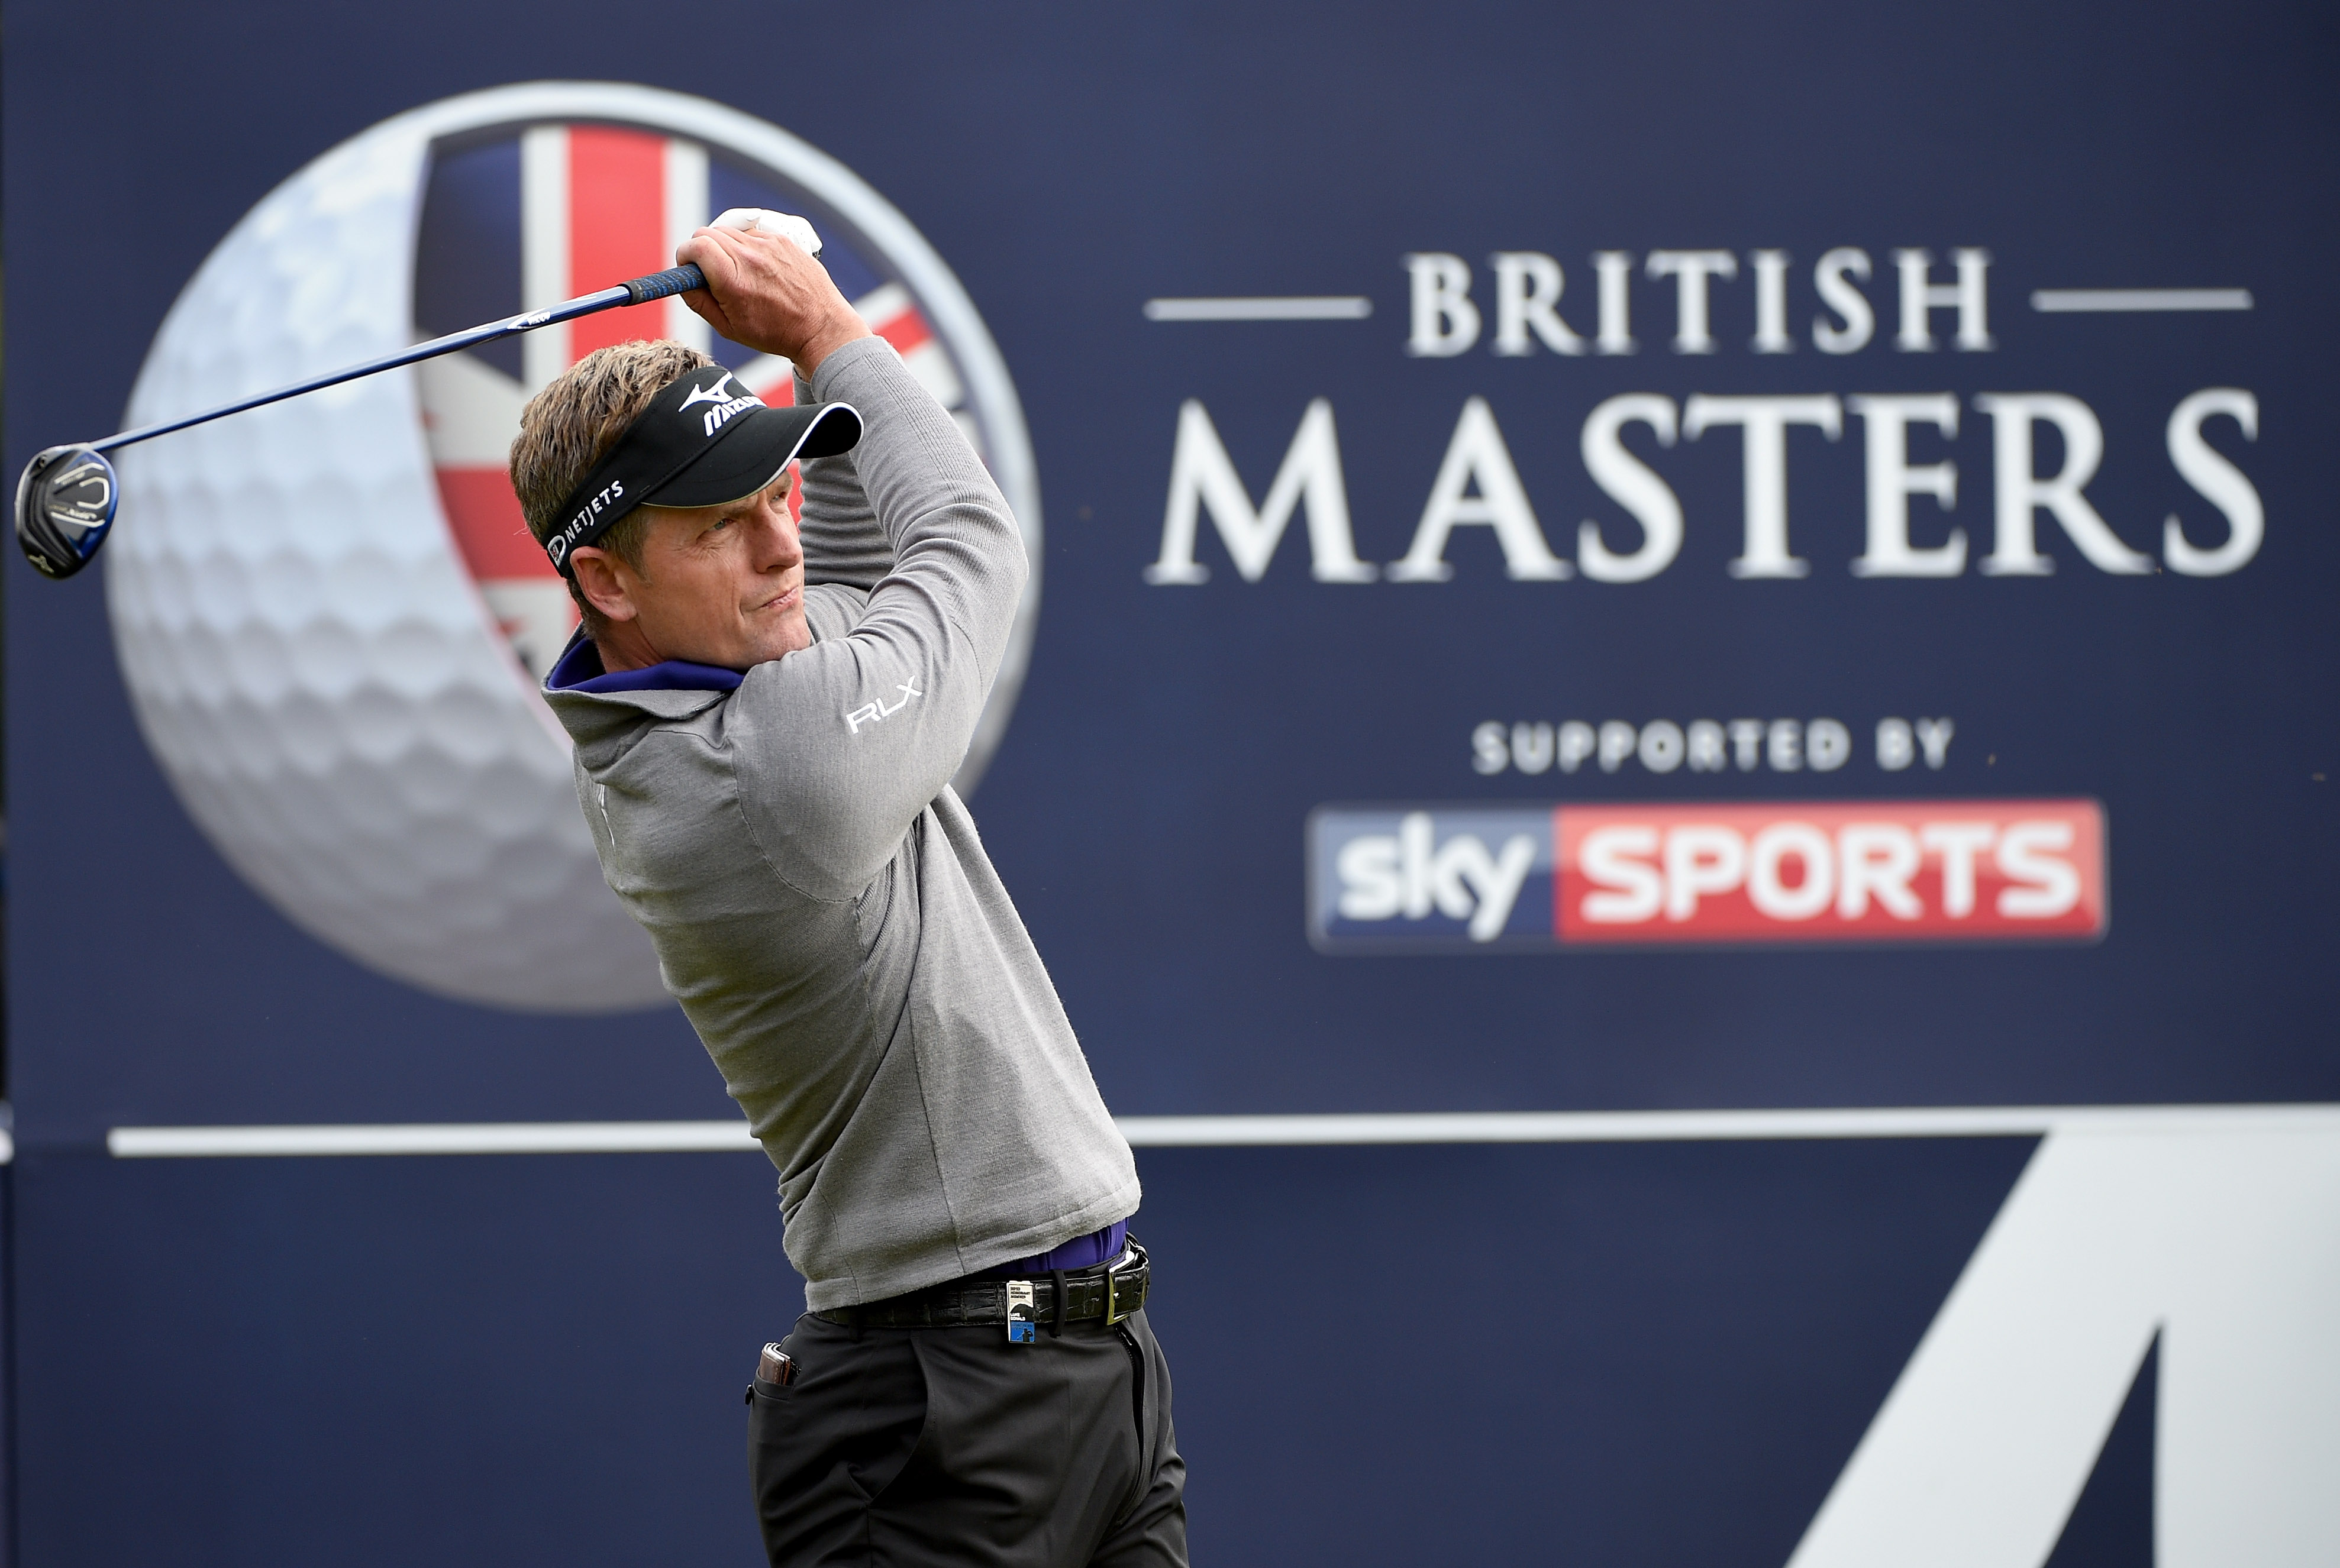 Mizuno Confirmed as Official Supplier to the British Masters